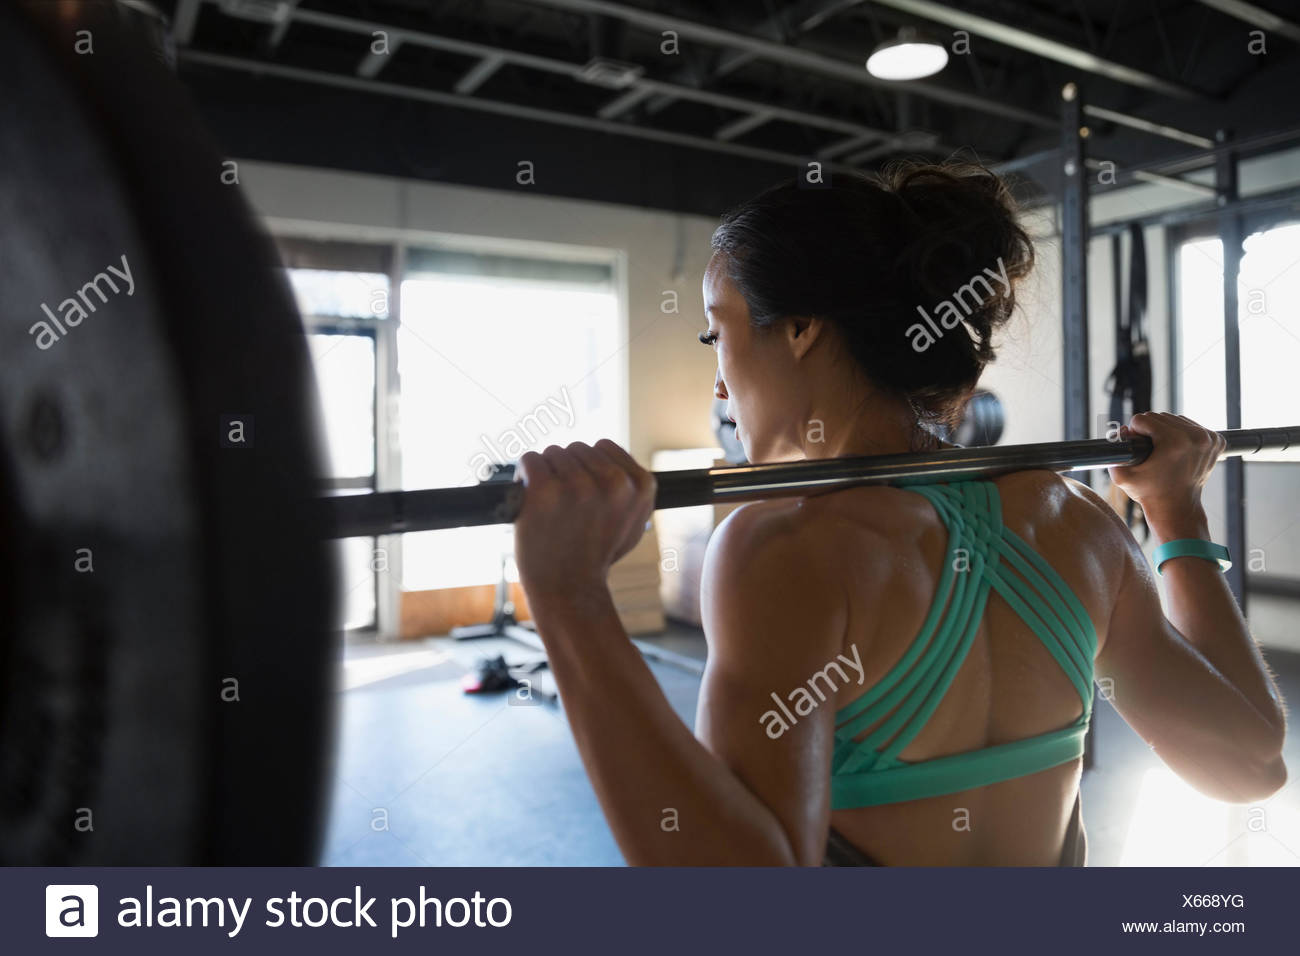 Woman weightlifting with barbell at gym Stock Photo